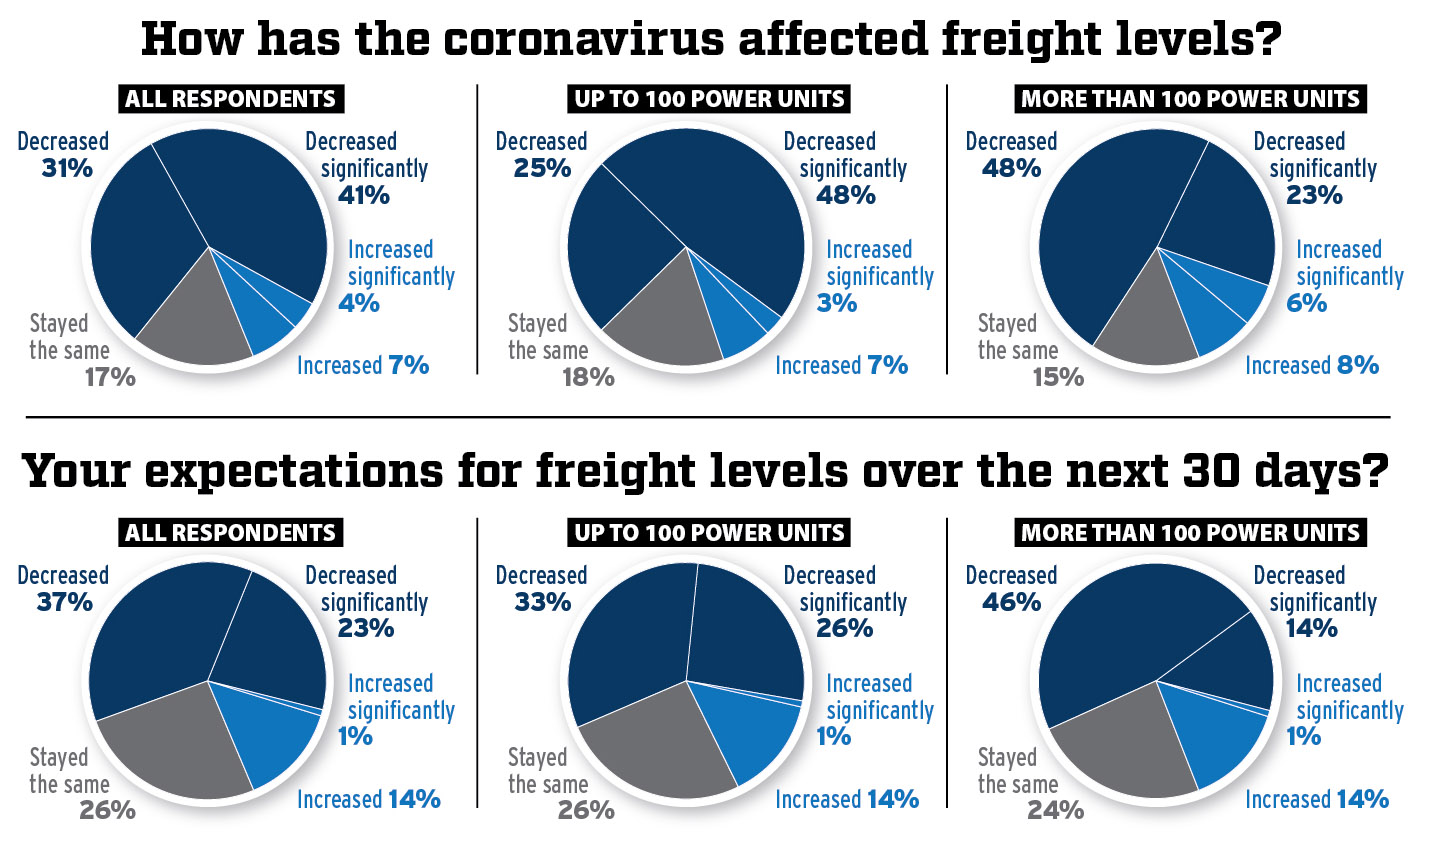 Survey results for how has the coronavirus affected freight levels and expectations for freight levels over the next 30 days